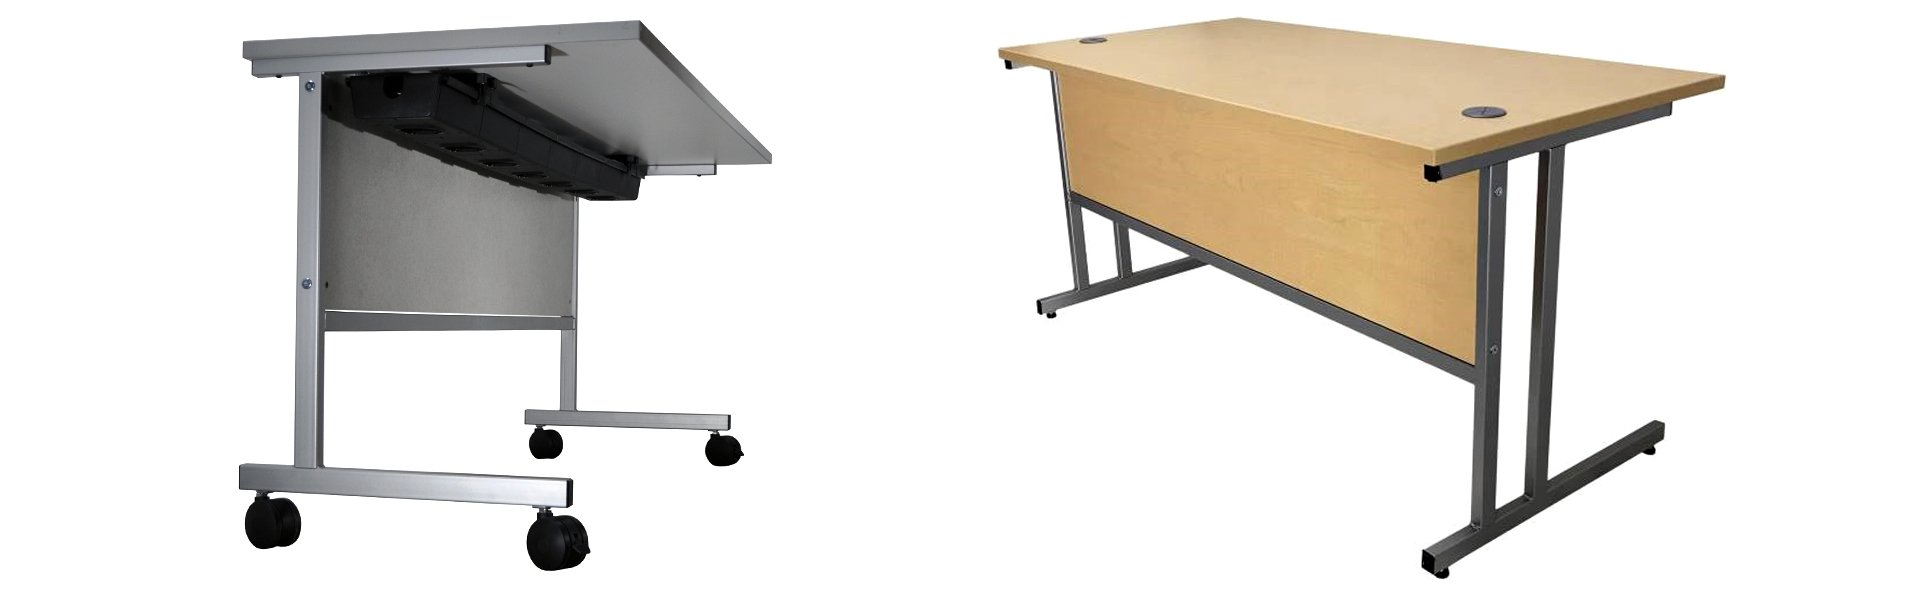 CFC Educational 519 - 521 Tables